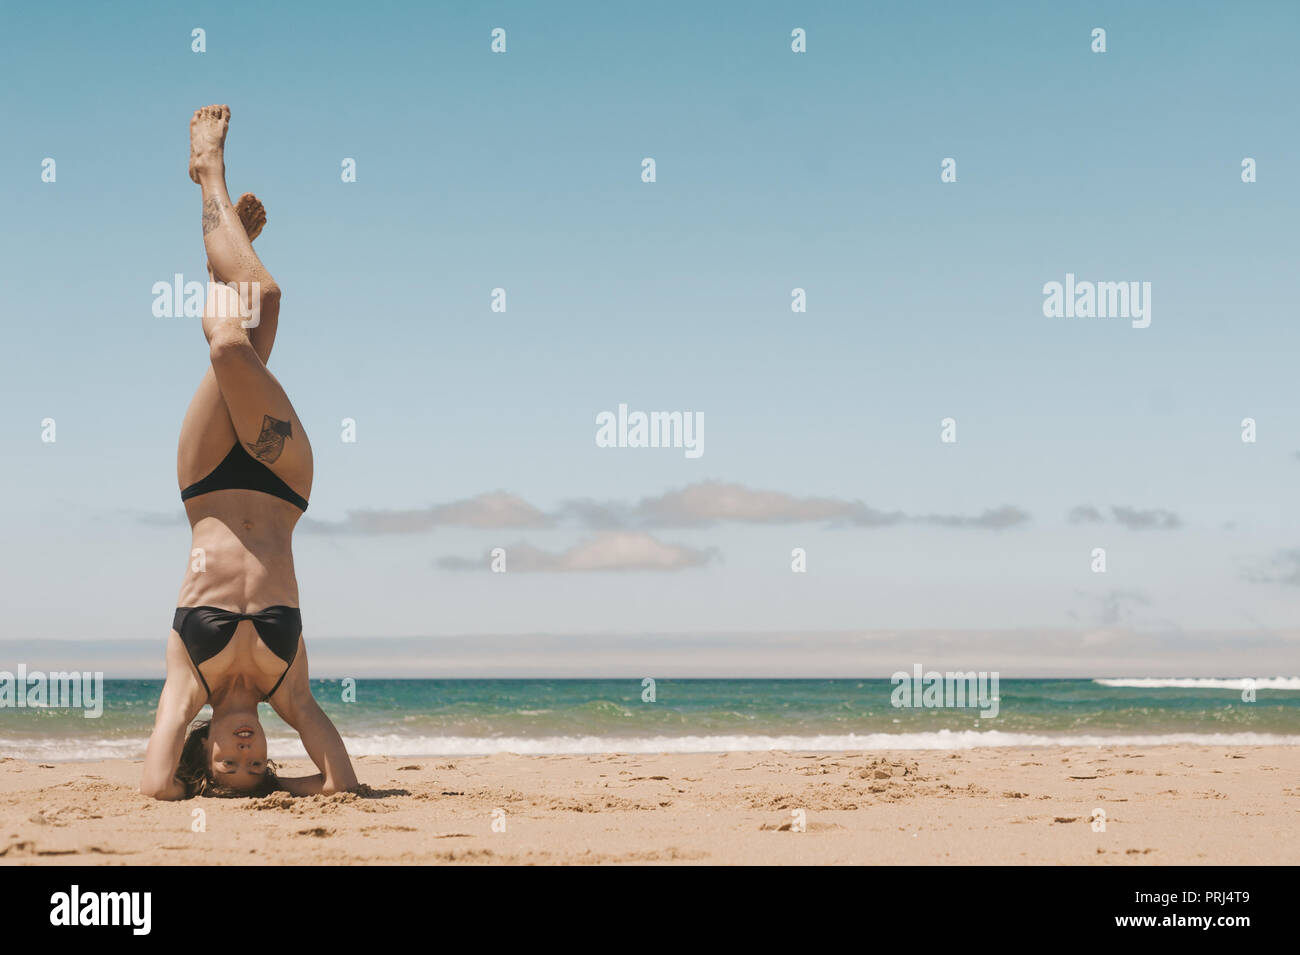 young woman practicing headstand on sandy beach on summer day - Stock Image